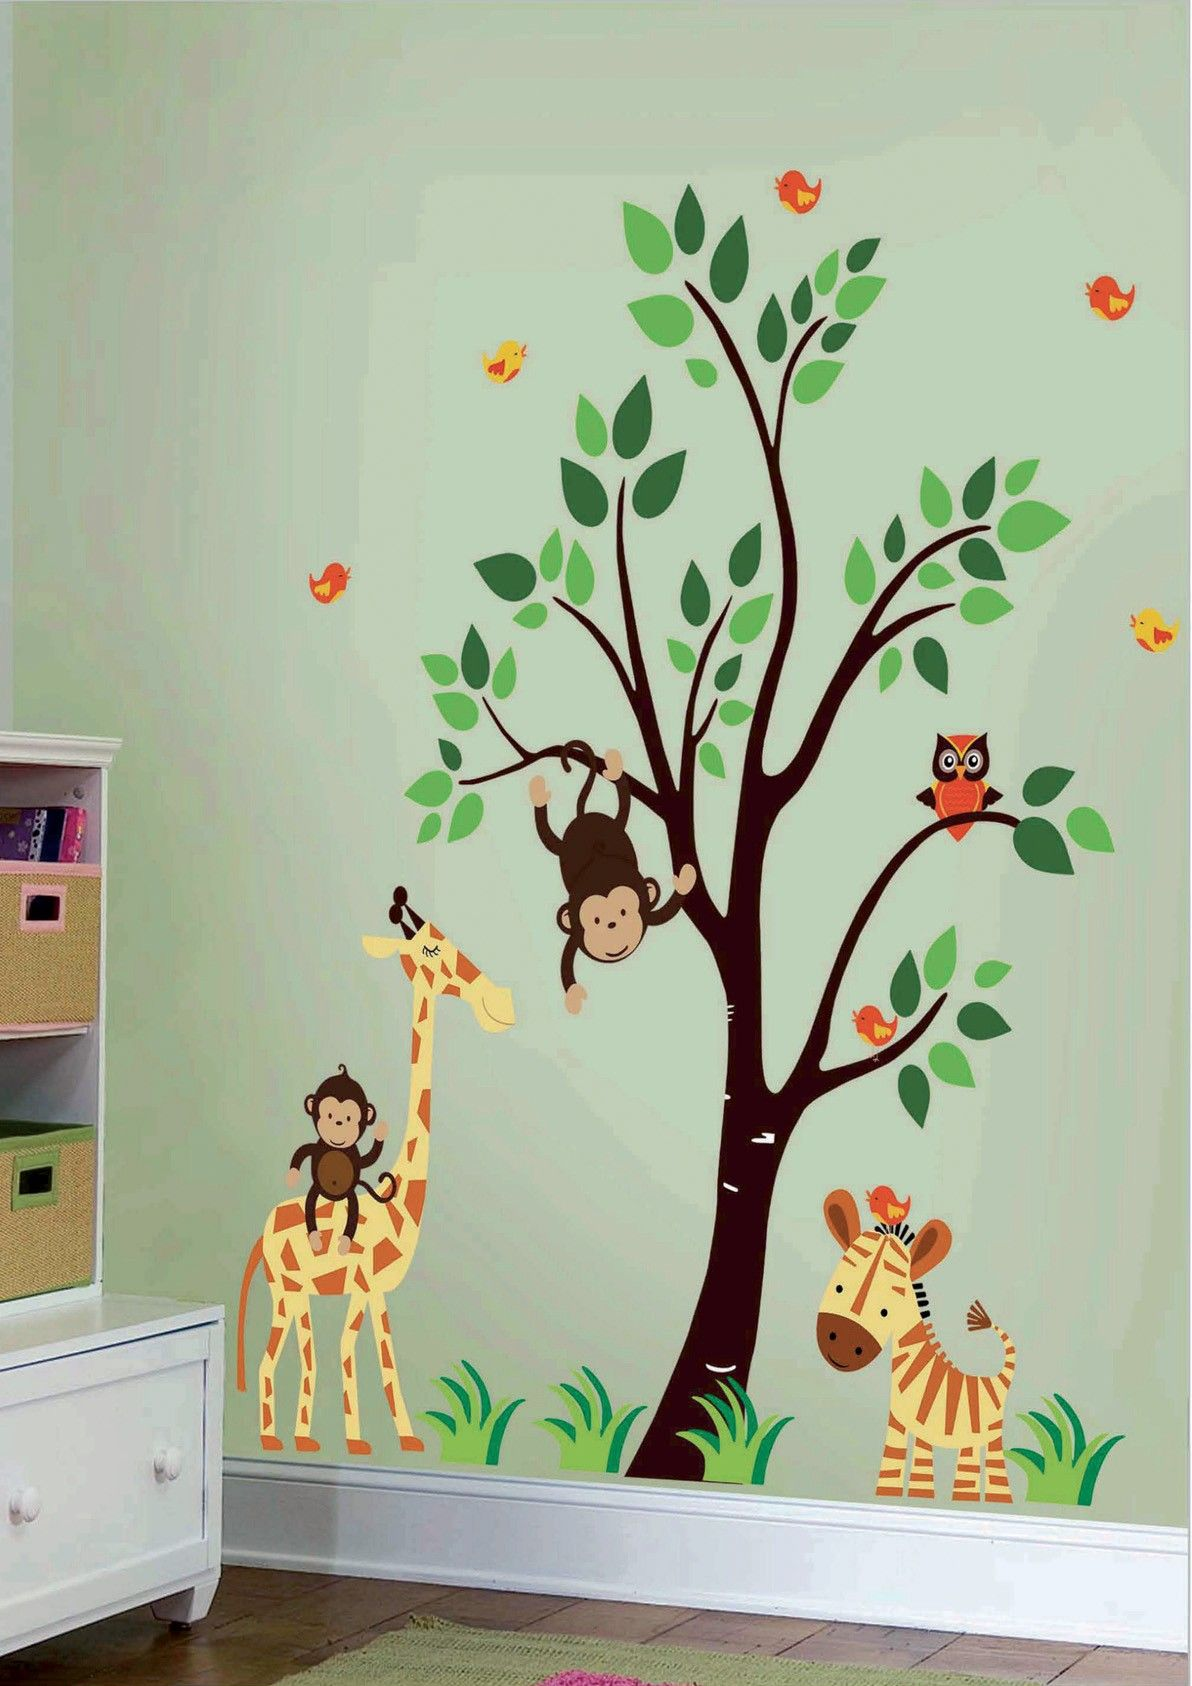 Artistic Vinyl Blik Mural Wall Sticker | Jungle Family Wall Decal For  Kids/children And